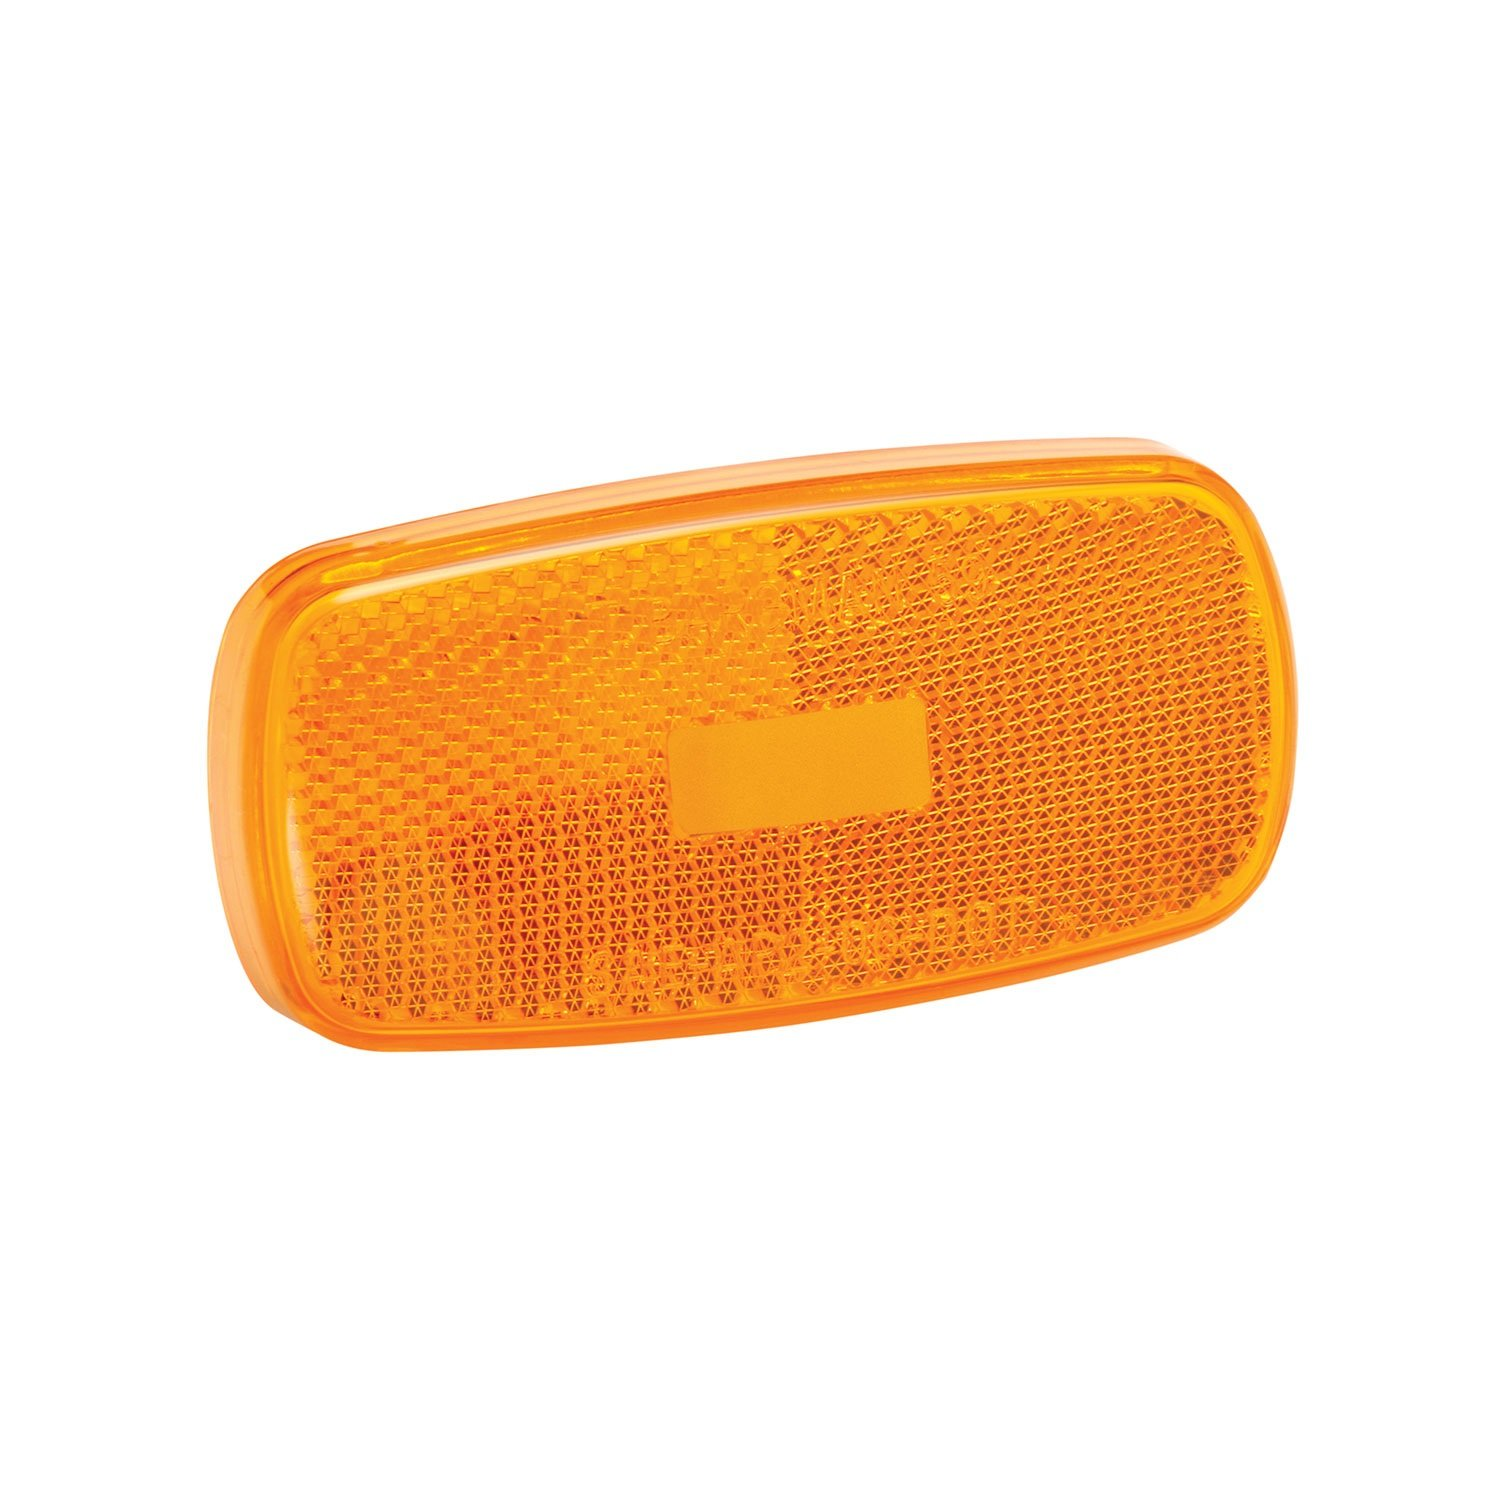 Amber Bargman 30-59-012 Clearance Light Lens